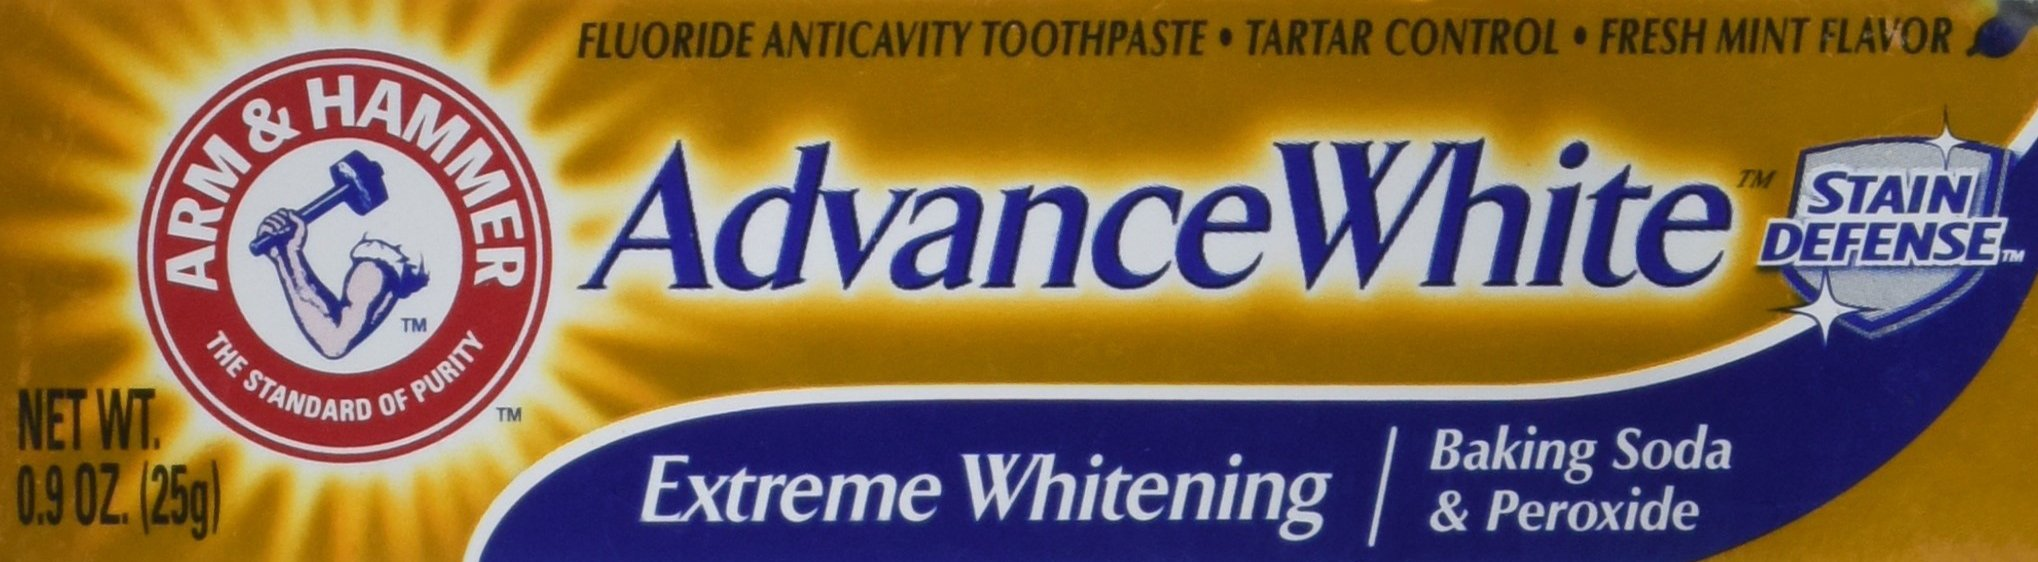 Arm & Hammer Advance White Extreme Whitening Toothpaste .9 Oz Travel Size (Pack of 8)